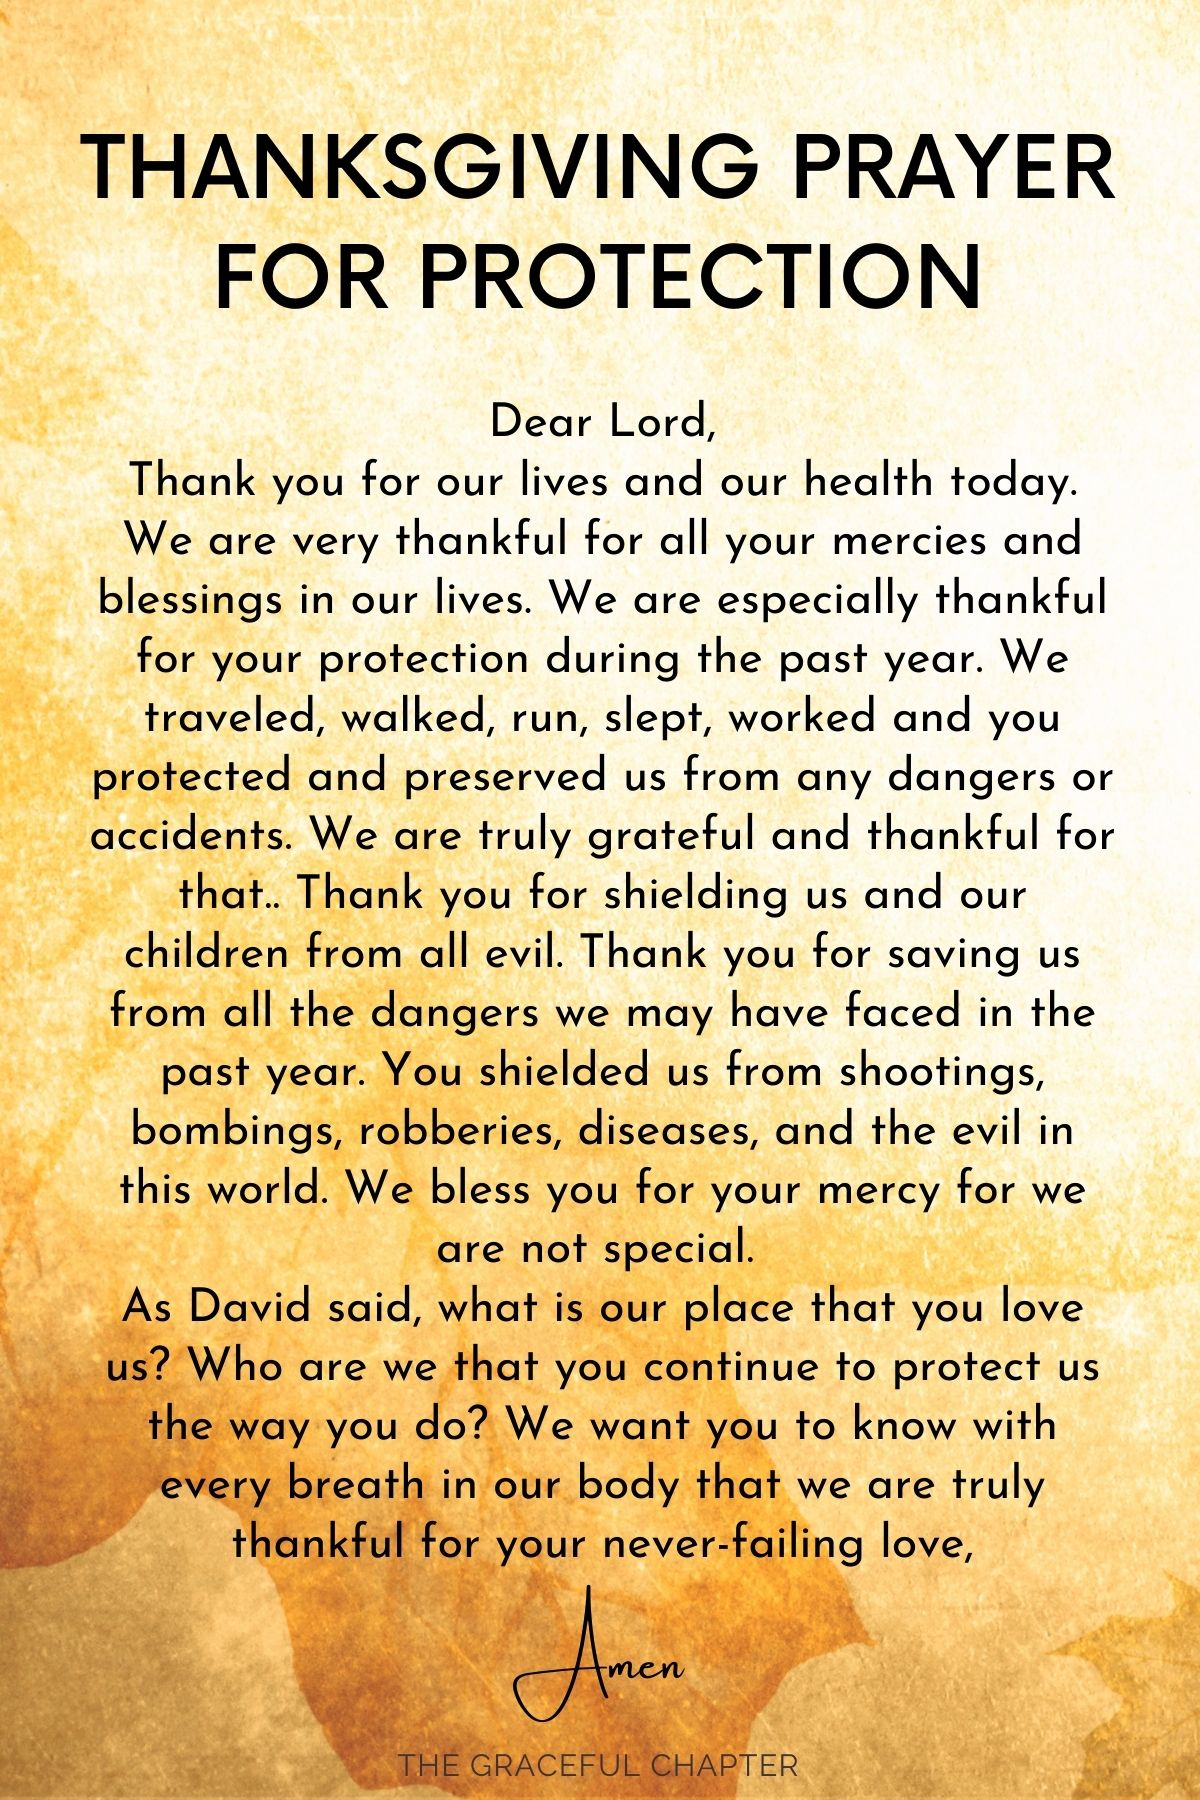 Thanksgiving prayer for protection